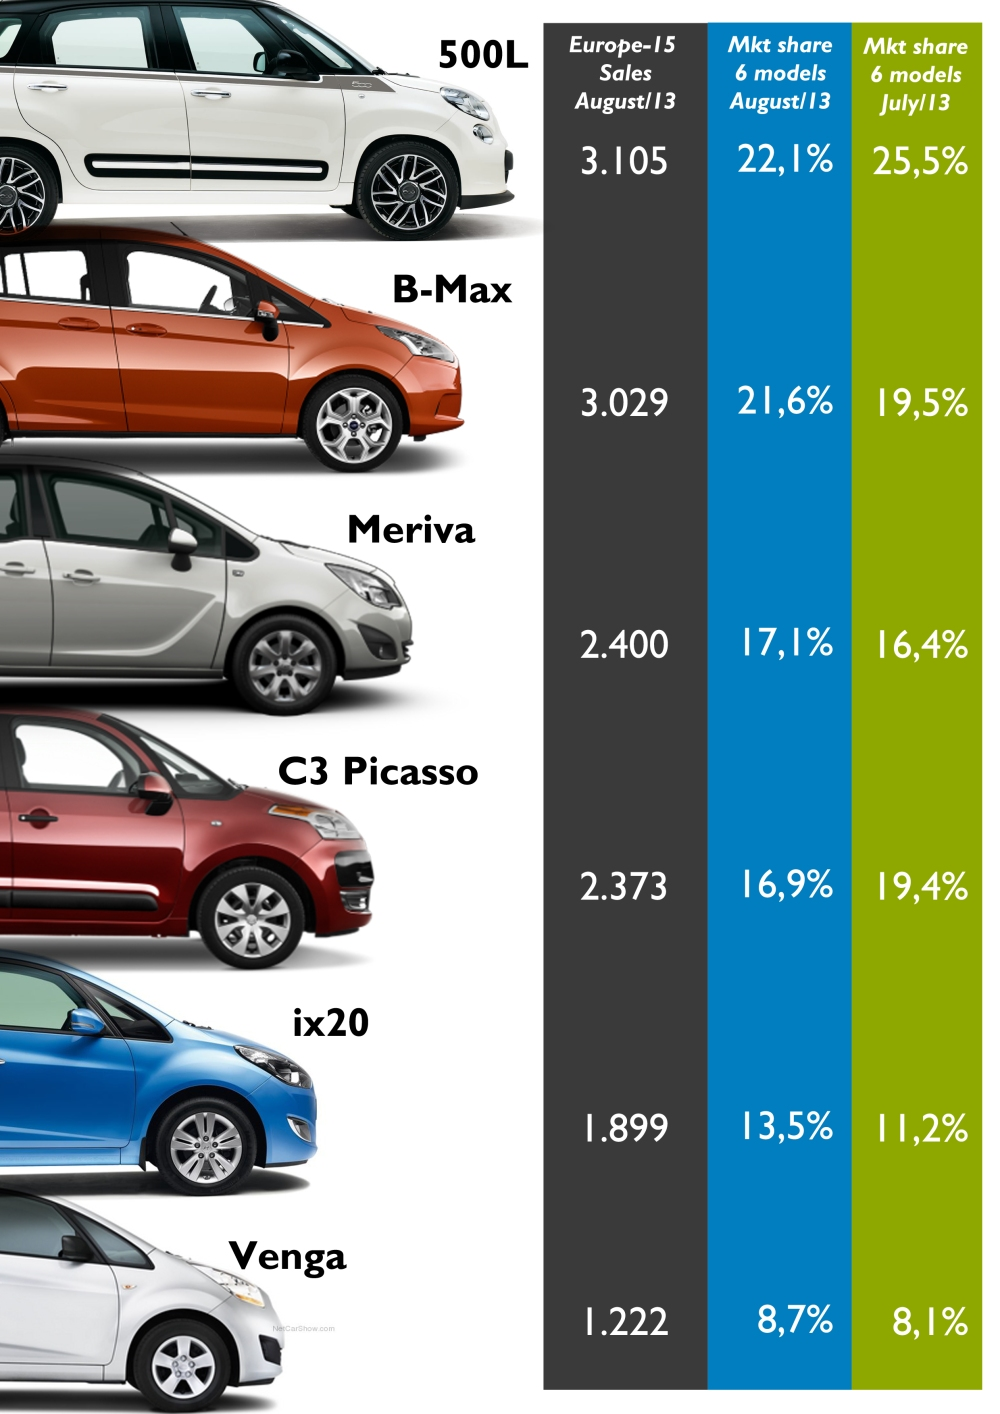 Sales figures for the Citroën C3 Picasso, Fiat 500L, Ford B-Max, Hyundai ix20, Kia Venga and Opel Meriva in Austria, Czech Republic, Denmark, France, Germany, Greece, Ireland, Italy, Netherlands, Poland, Romania, Slovenia, Spain, Sweden, and Switzerland, during August 2013. Estimated sales for Citroën C3 Picasso and Fiat 500L in Sweden and Germany. The 500L beats the B-Max for only some units, while the Meriva outsold the C3 Picasso. The Fiat and Citroën lose market share as their largest markets (Southern Europe) have larger falls during August than Northern European markets (where the B-Max, ix20 and Meriva rule). Source: see at the bottom of this post.